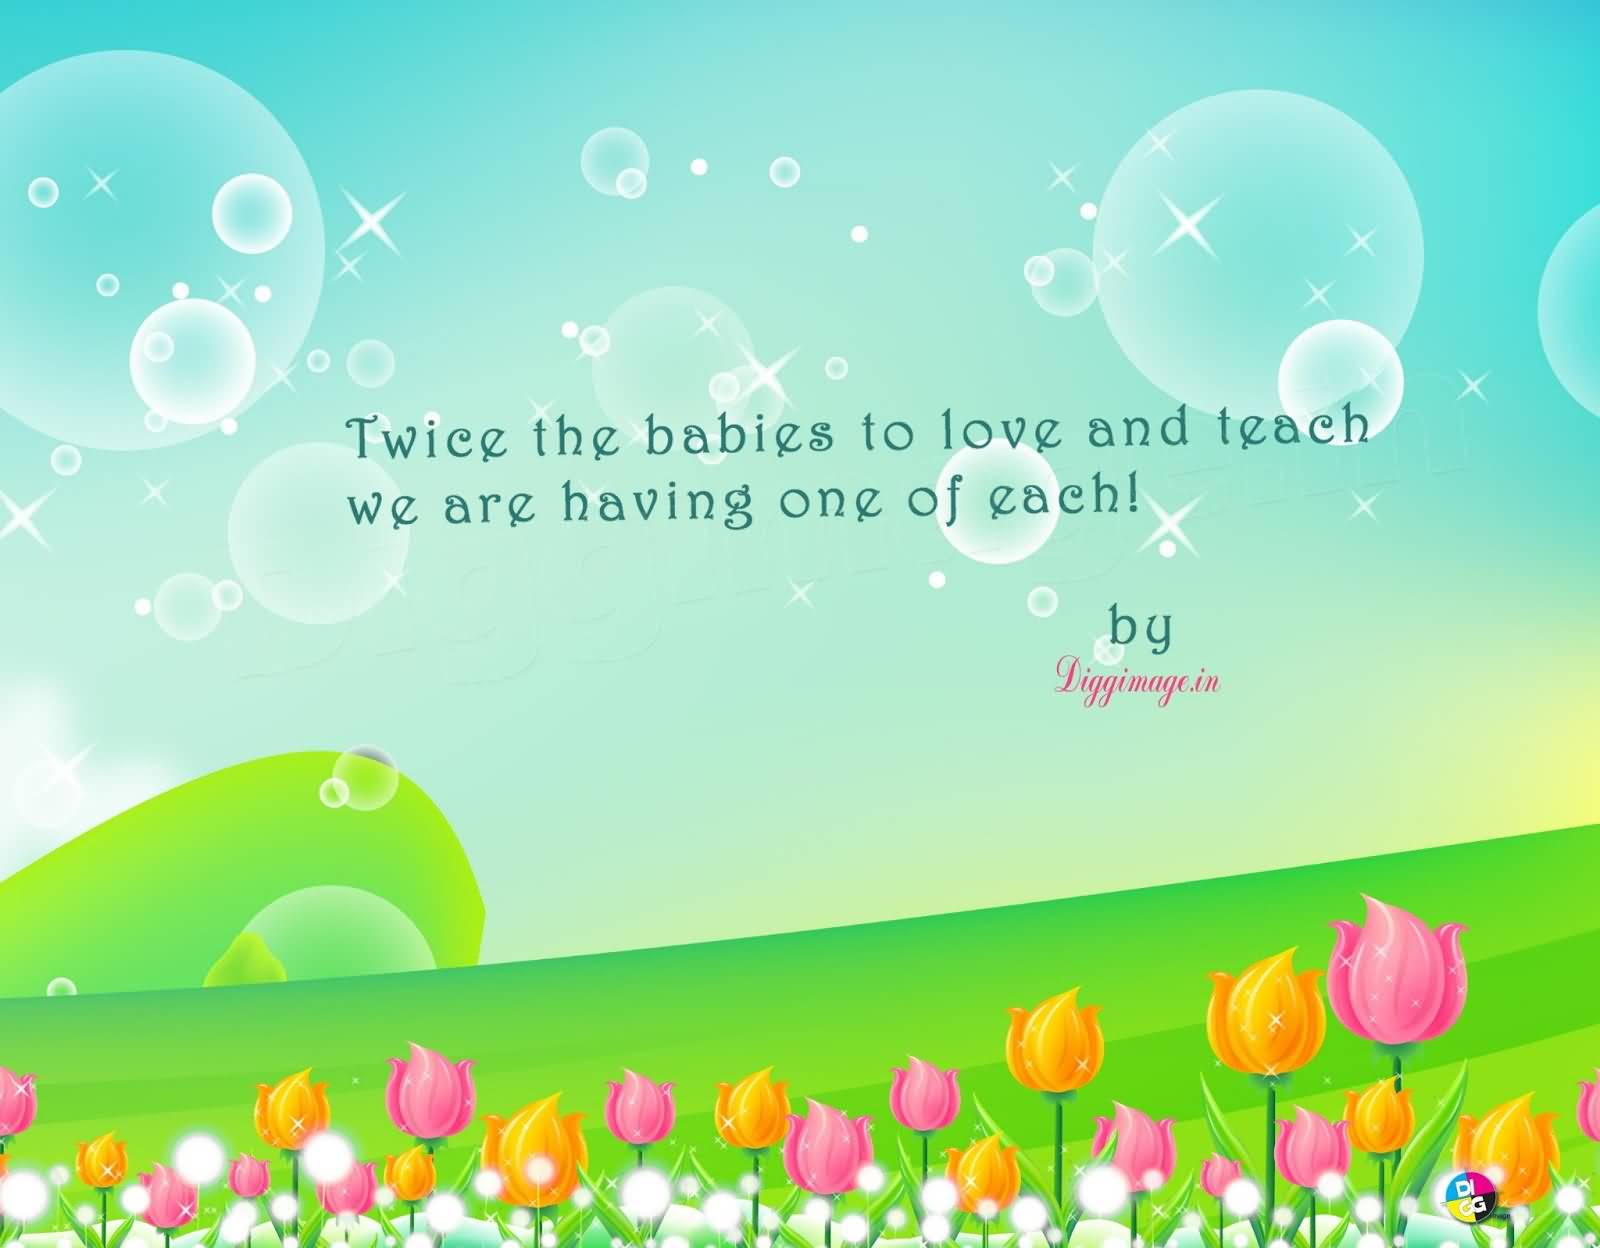 Short Baby Quotes Twice The Babies To Love And Teach We Are Having One Of Each!